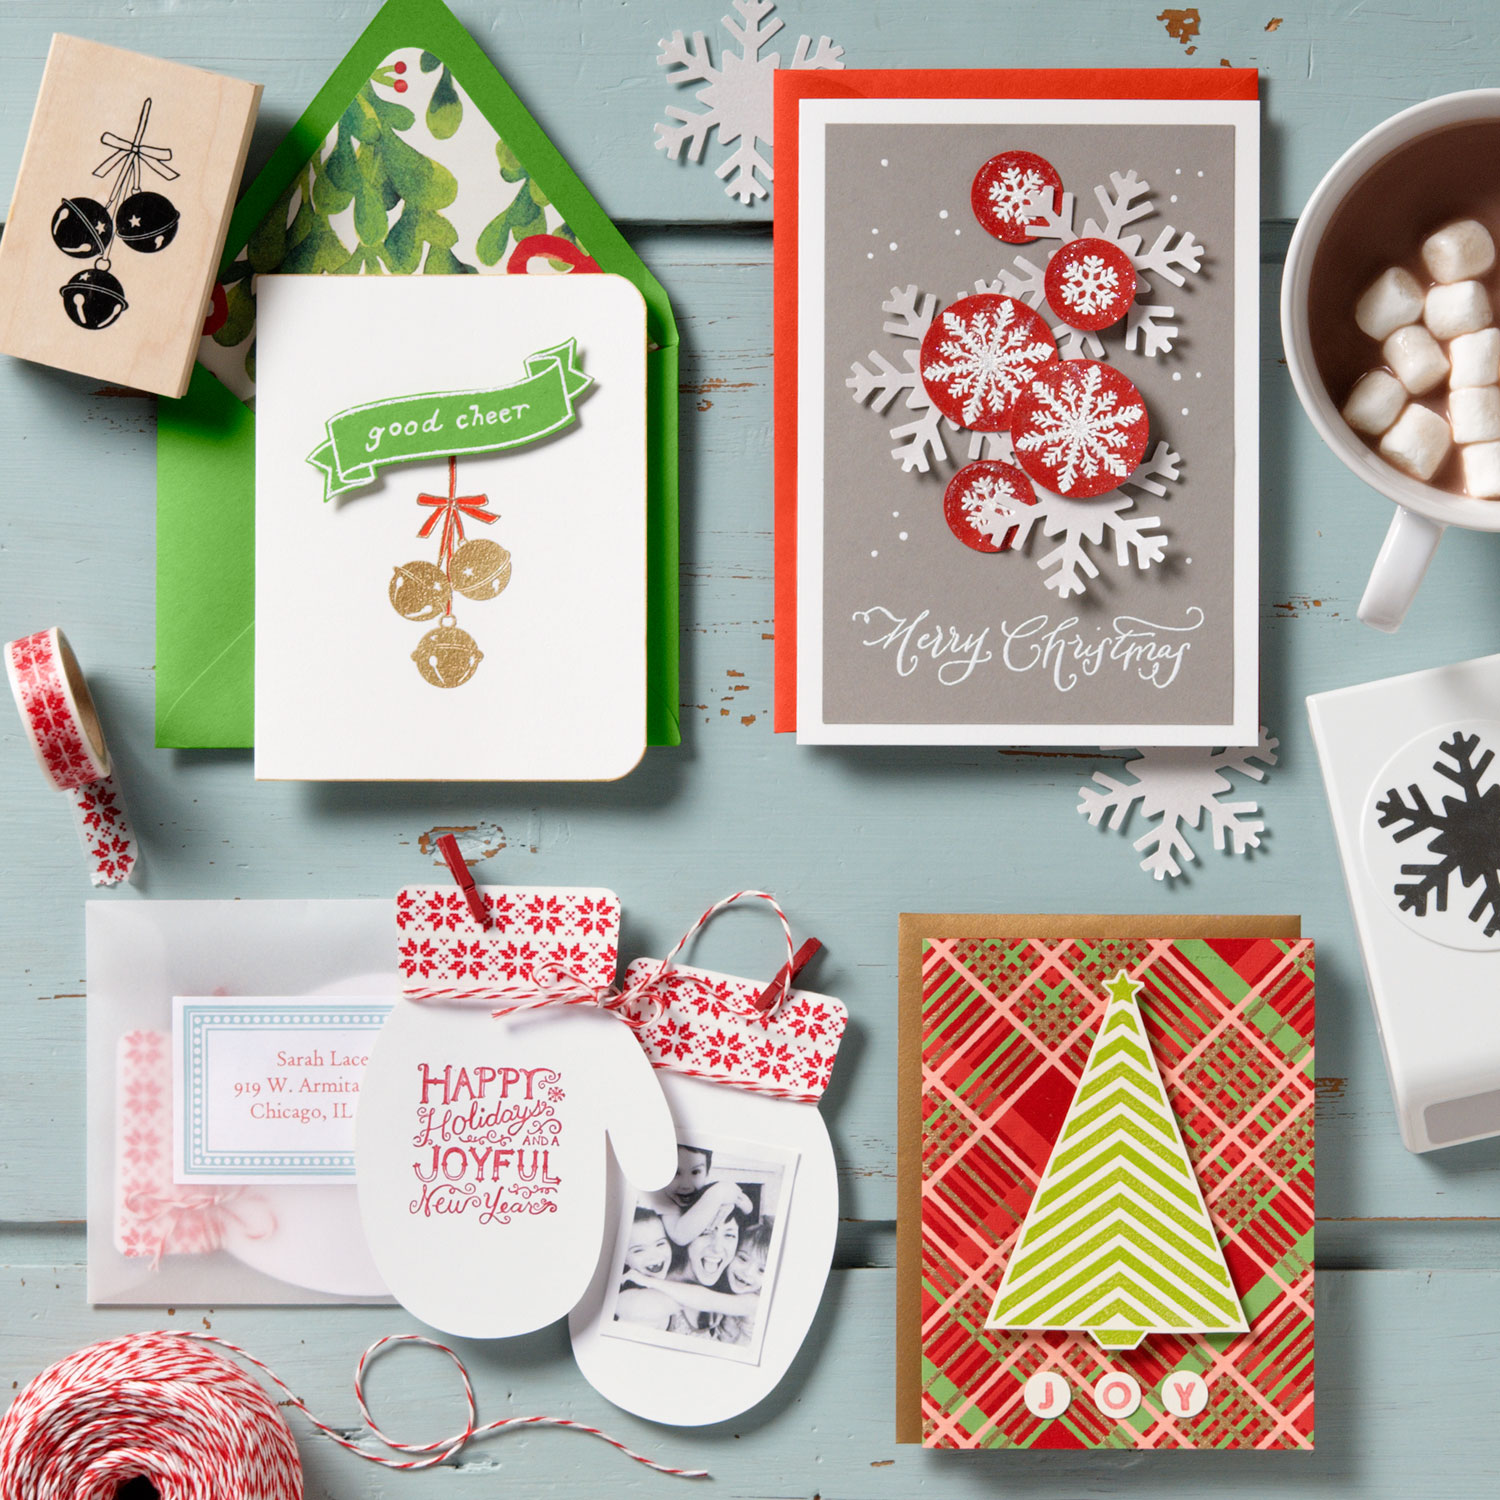 Making Holiday Cards Online - darwinromero.us - Best Card Templates